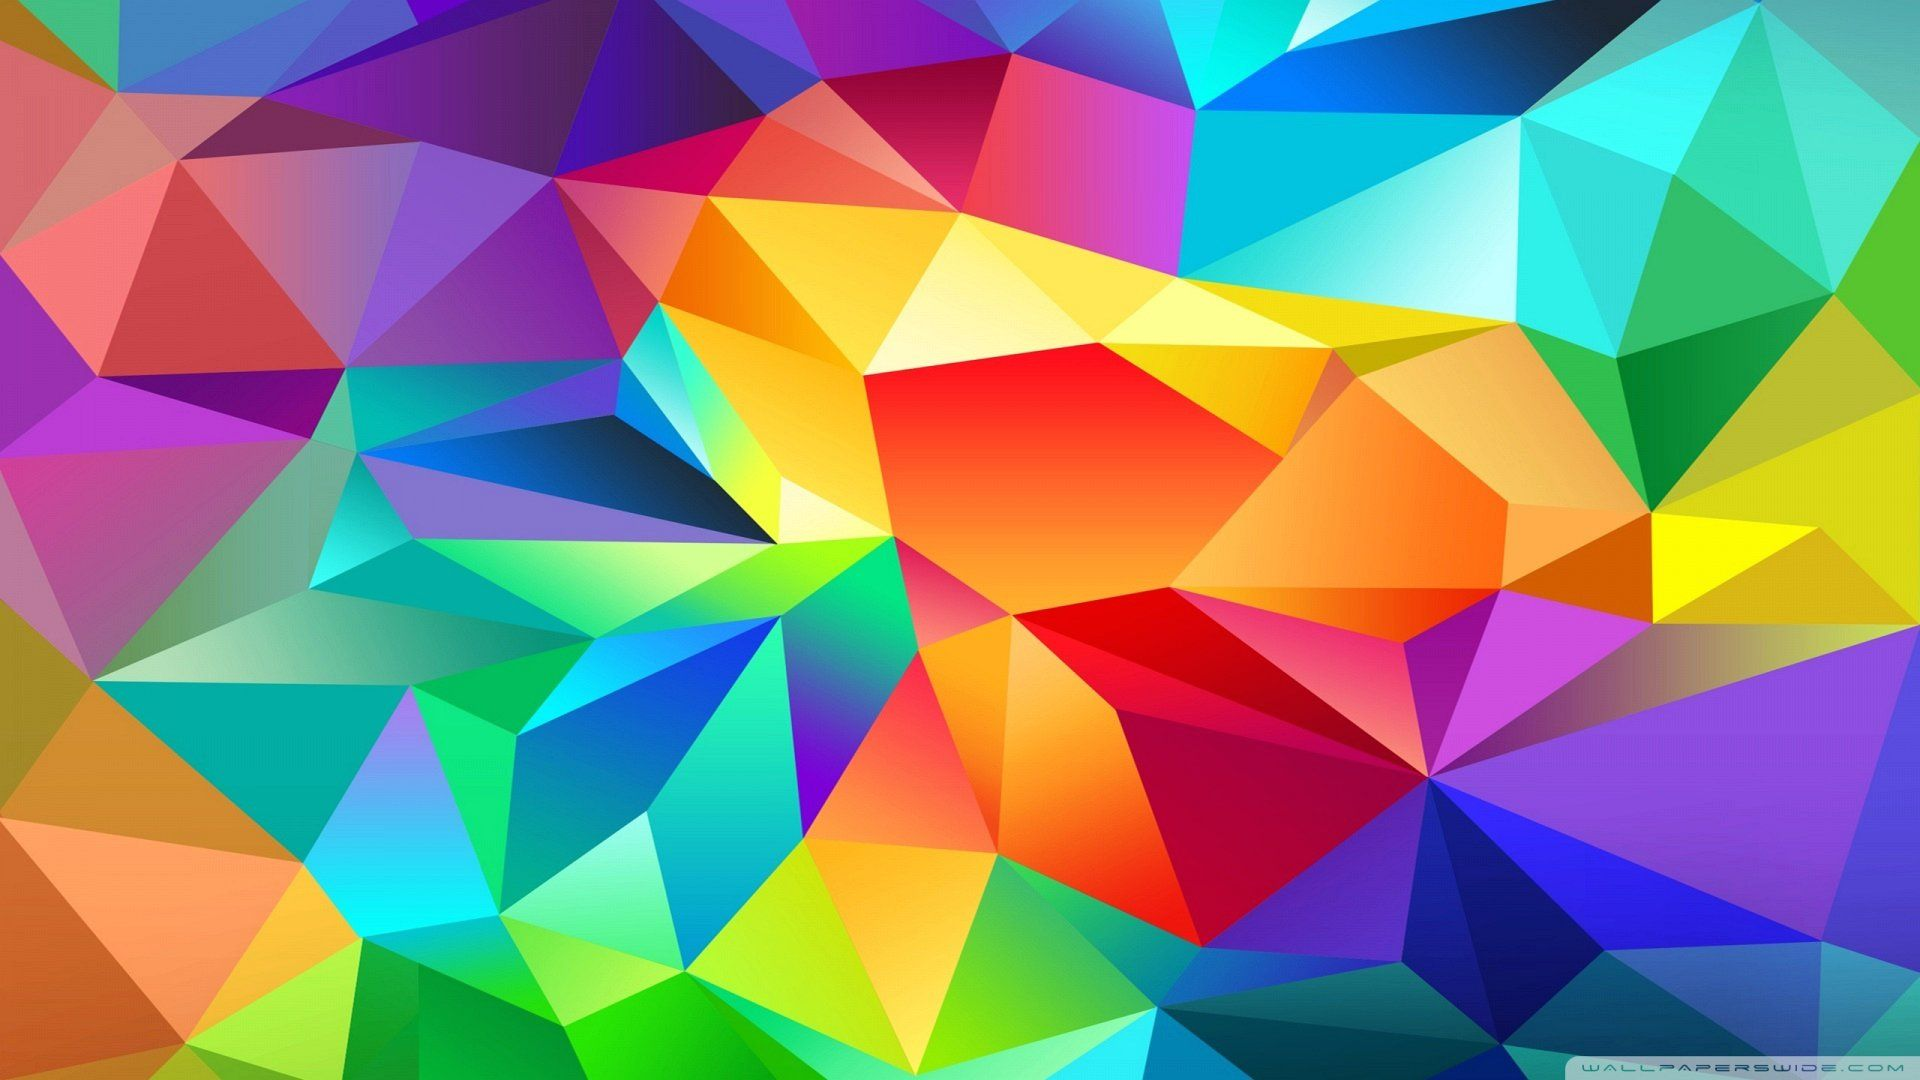 wallpaper-polygonal-colorful-abstract-1920-x-1080-full-hd (1920